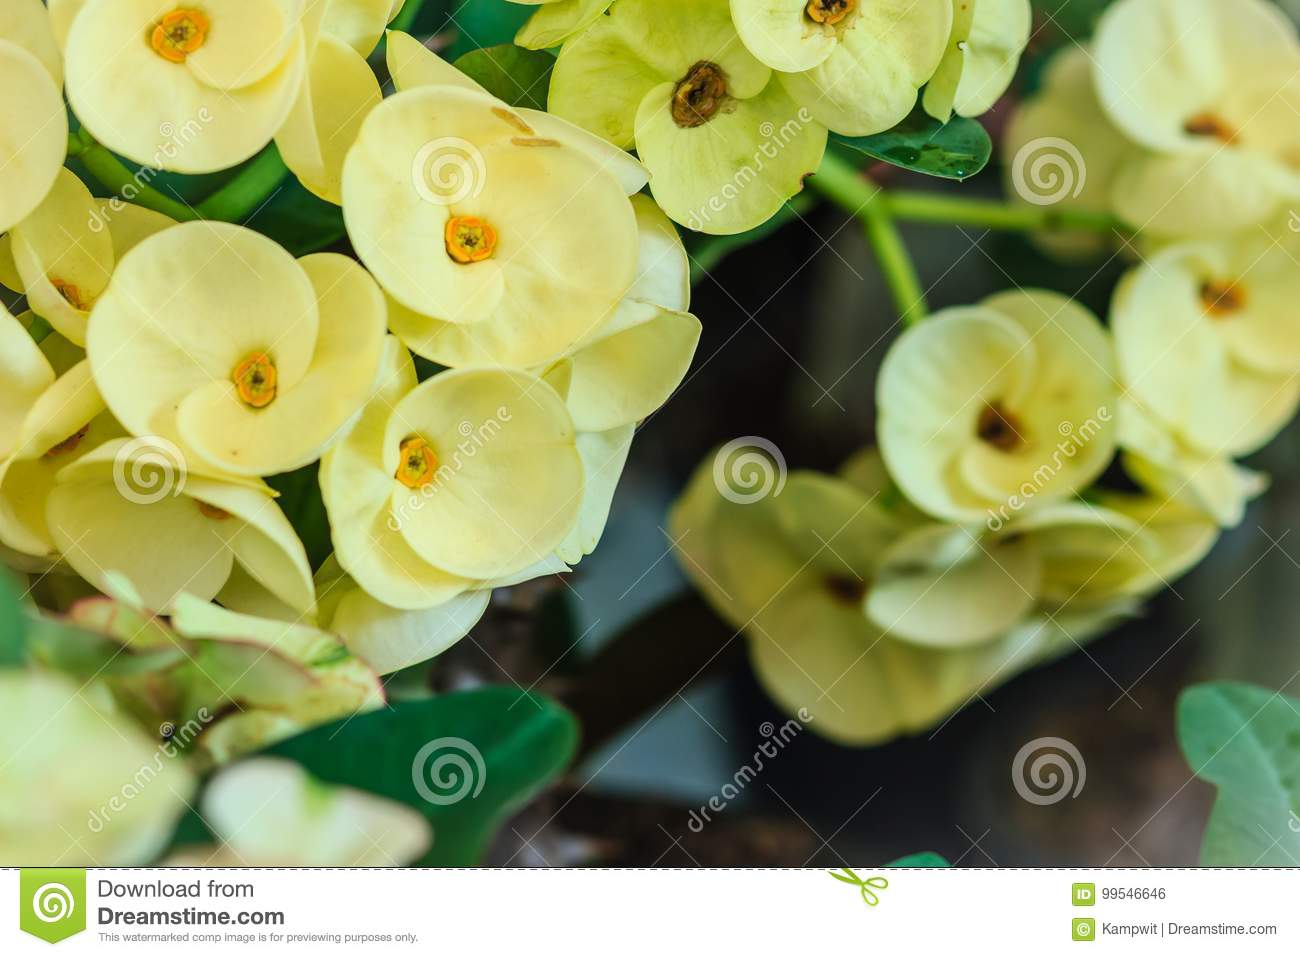 Beautiful hybrid Euphorbia milii (crown of thorns, Christ plant, Christ thorn) yellow flower for sale at the tree market. Yellow